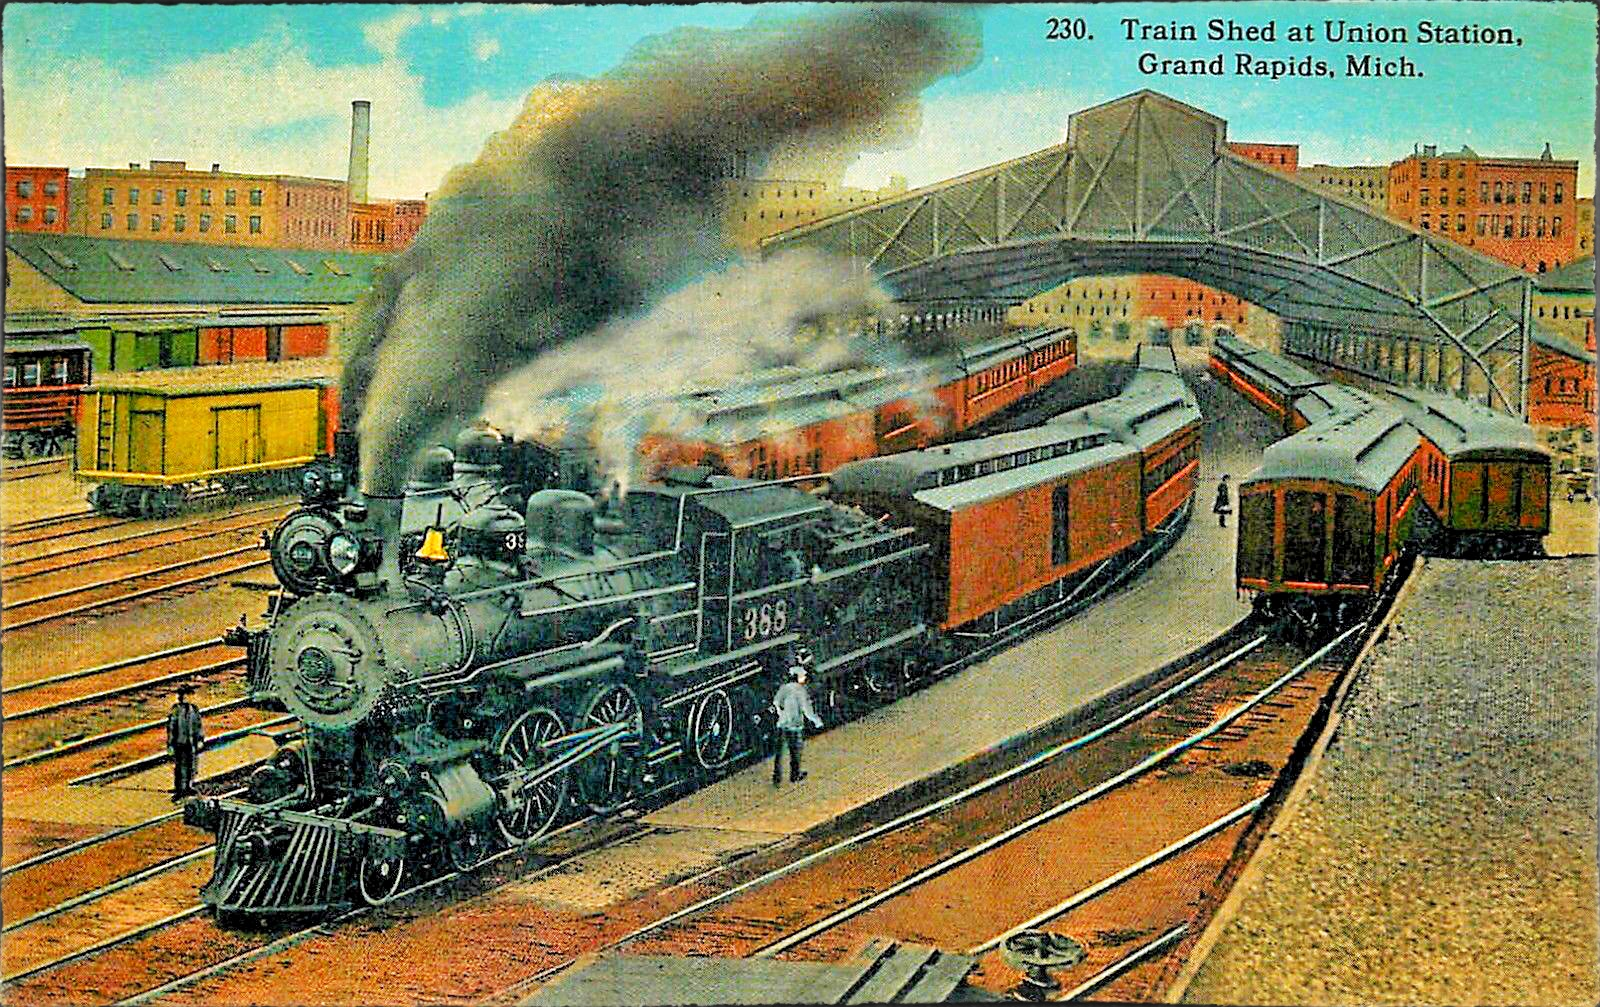 Grand-Rapids-Michigan-Train-Shed-at-Union-Station-Locomotive-388-1915